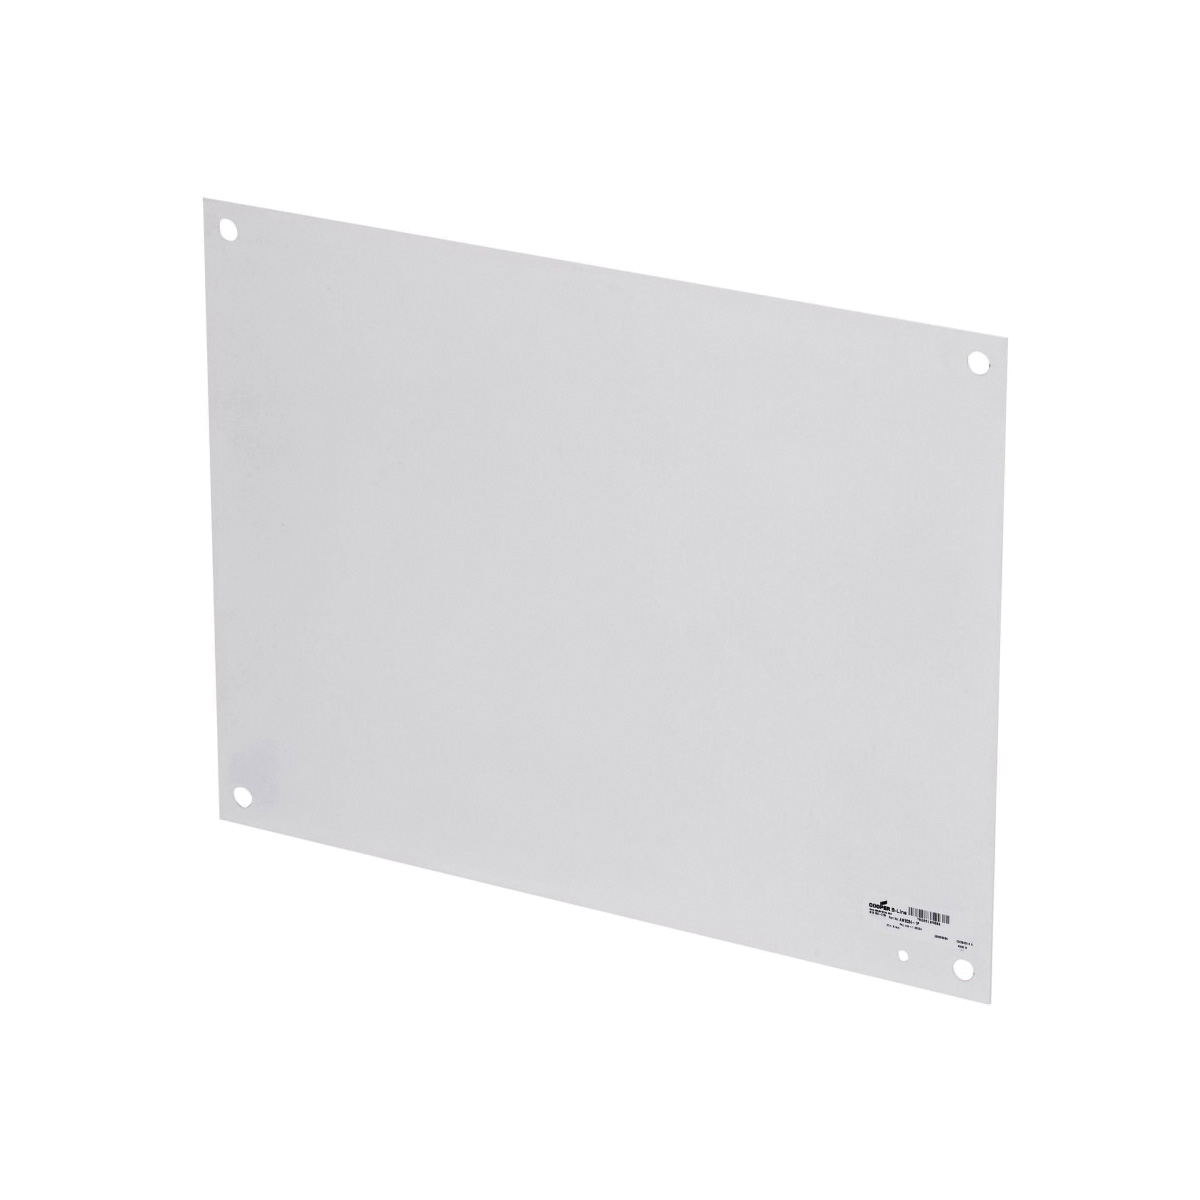 B-Line AW2424-1P Flat Enclosure Panel, 22-1/2 in W x 21 in H, Steel, White